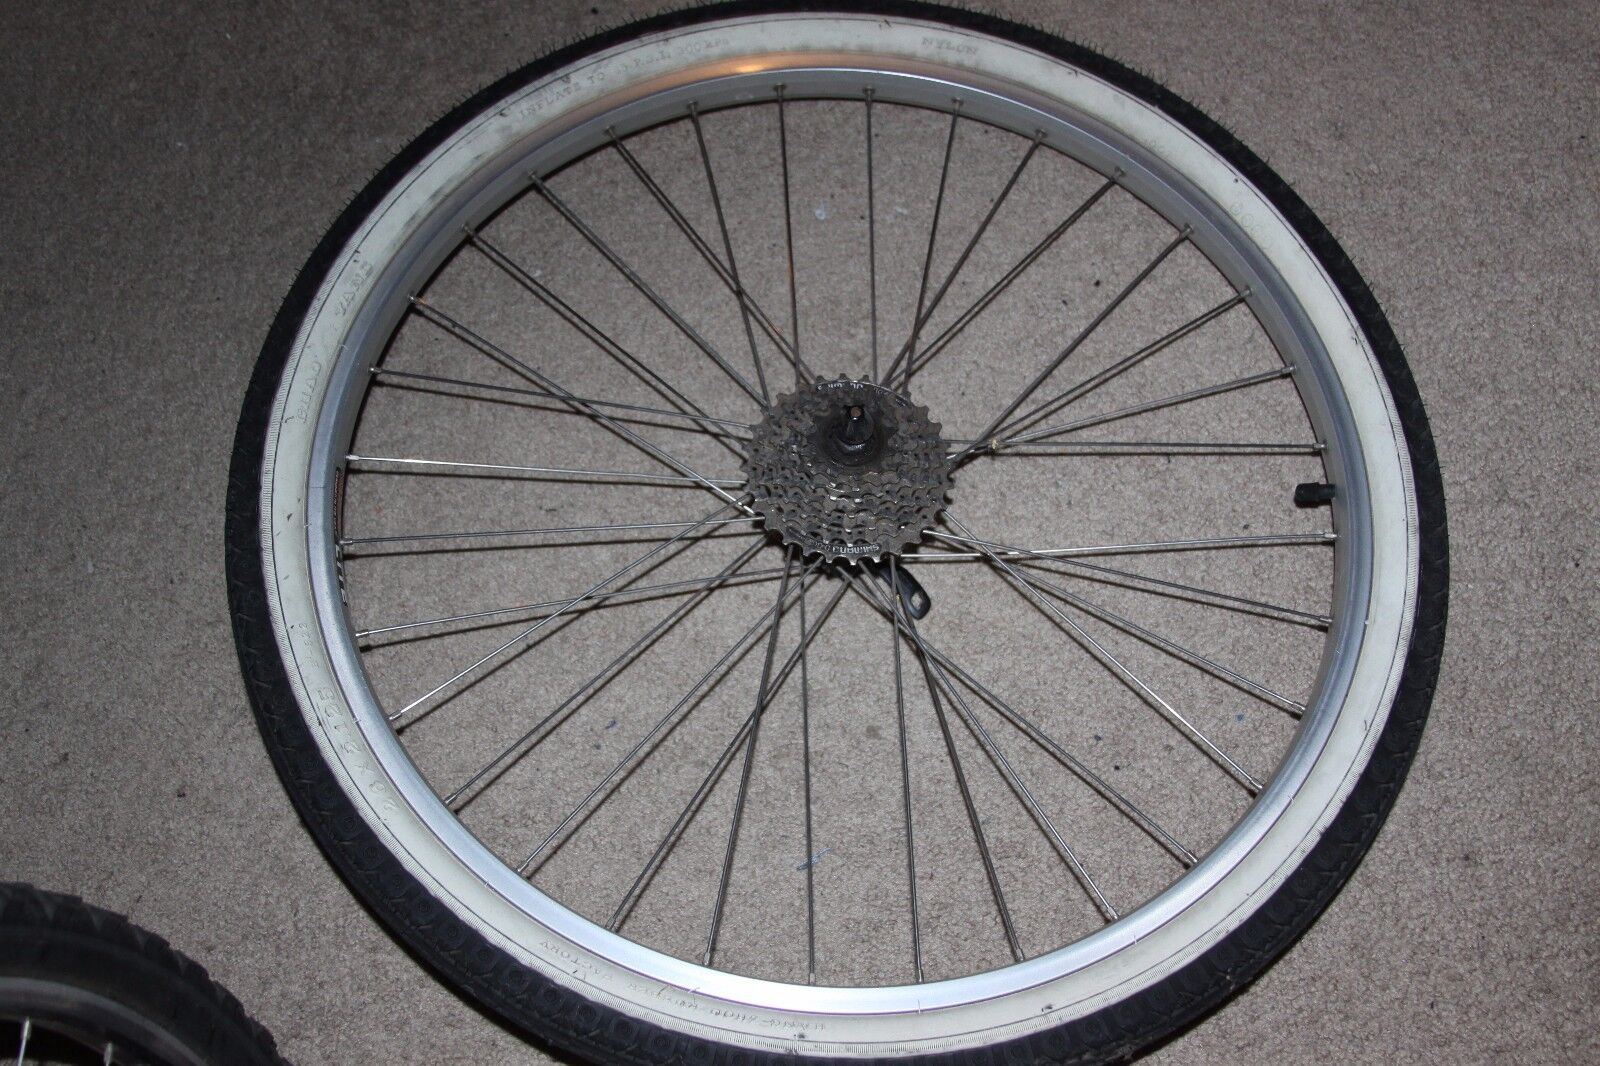 Used Rear Wheel 26 , Sunrims Rhyno Lite, Shimano Deore FH-M510 VIAM